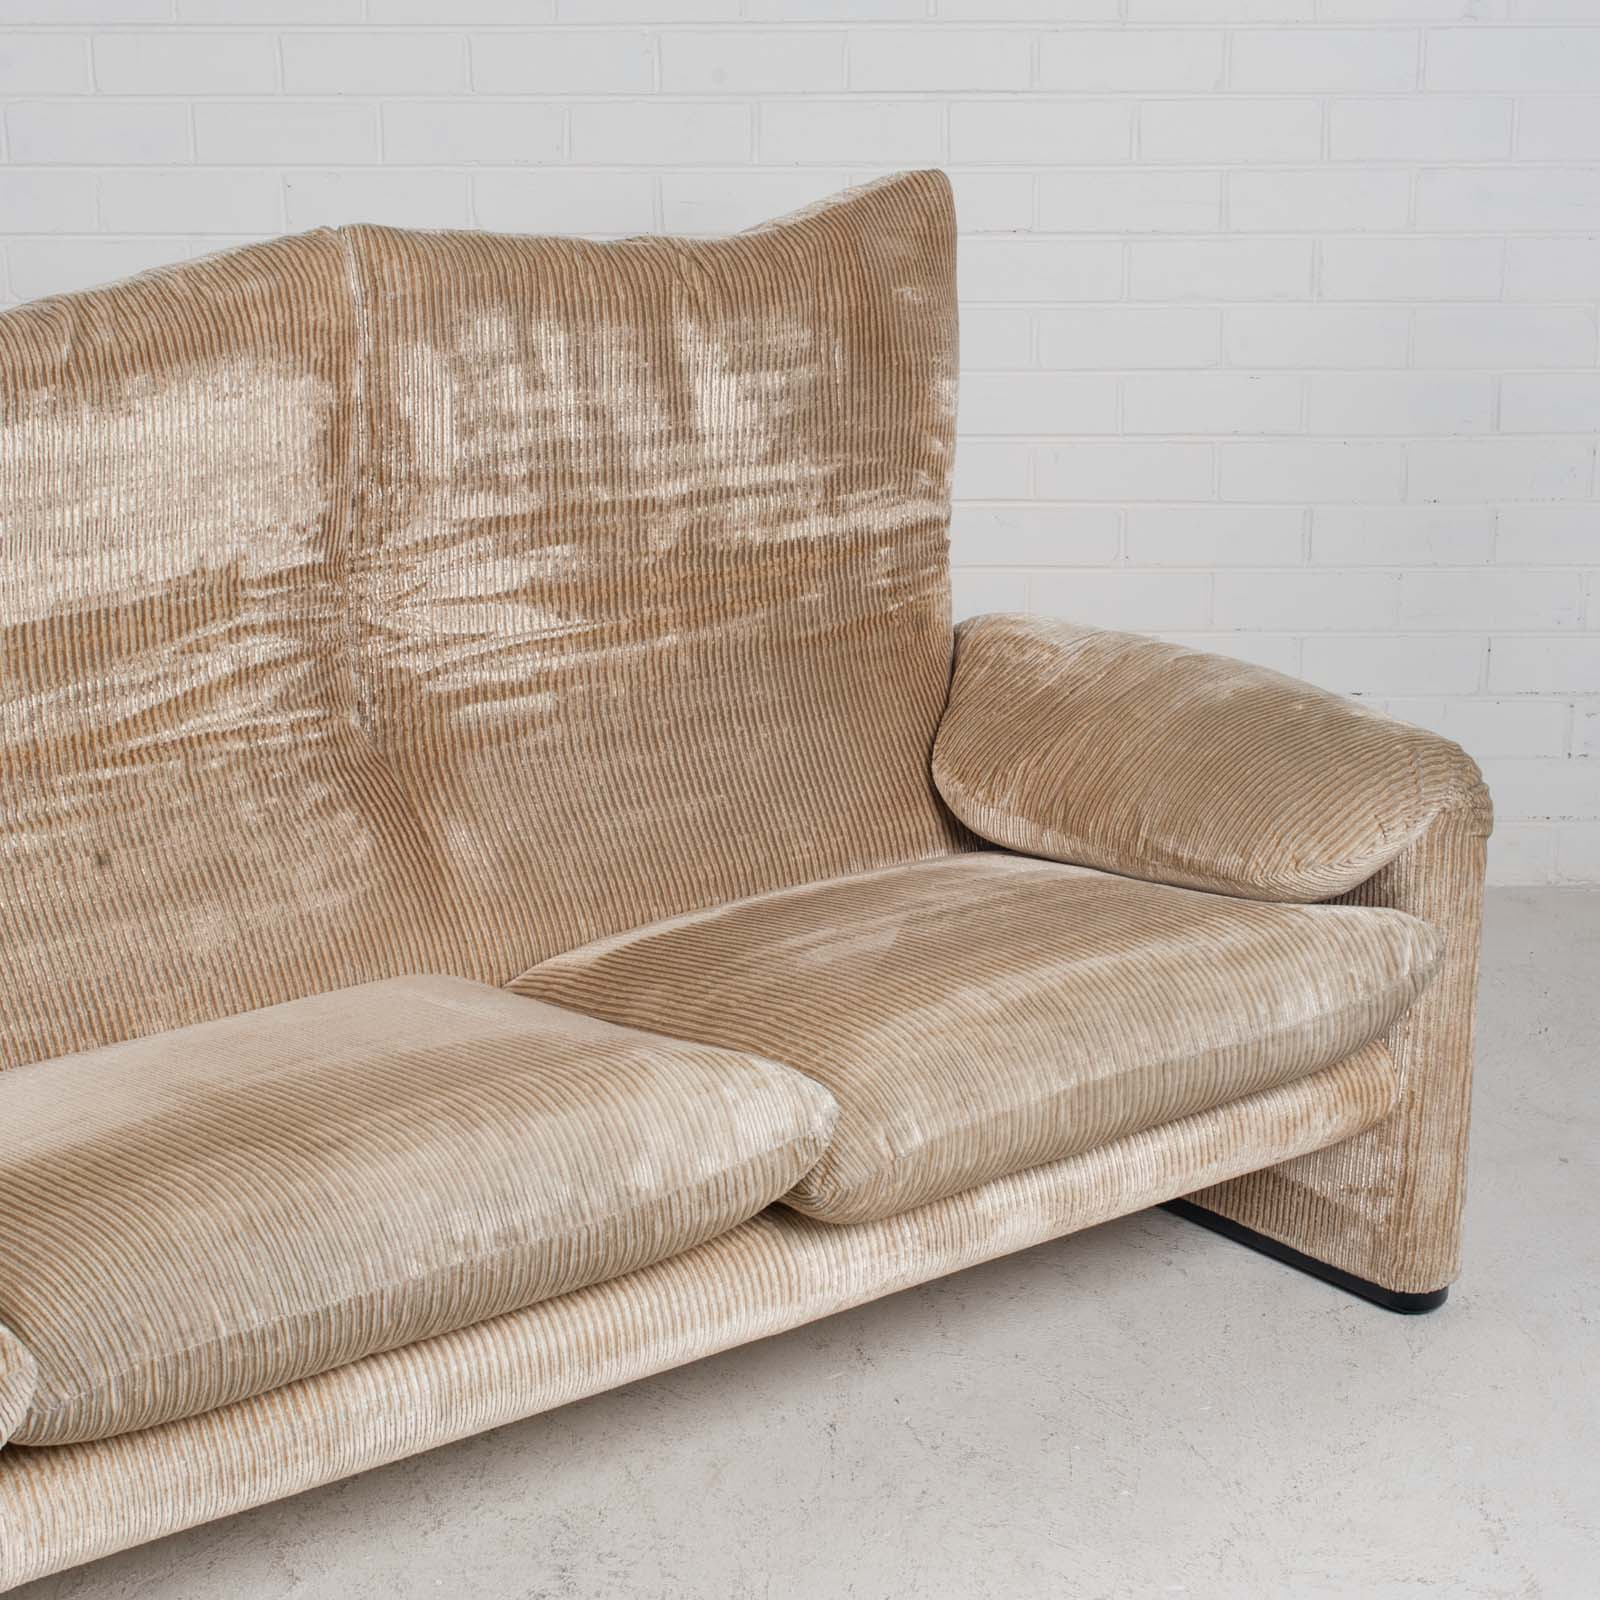 Maralunga 3 Seat Sofa By Vico Magistretti For Cassina In Original Upholstery 1970s Italy 05